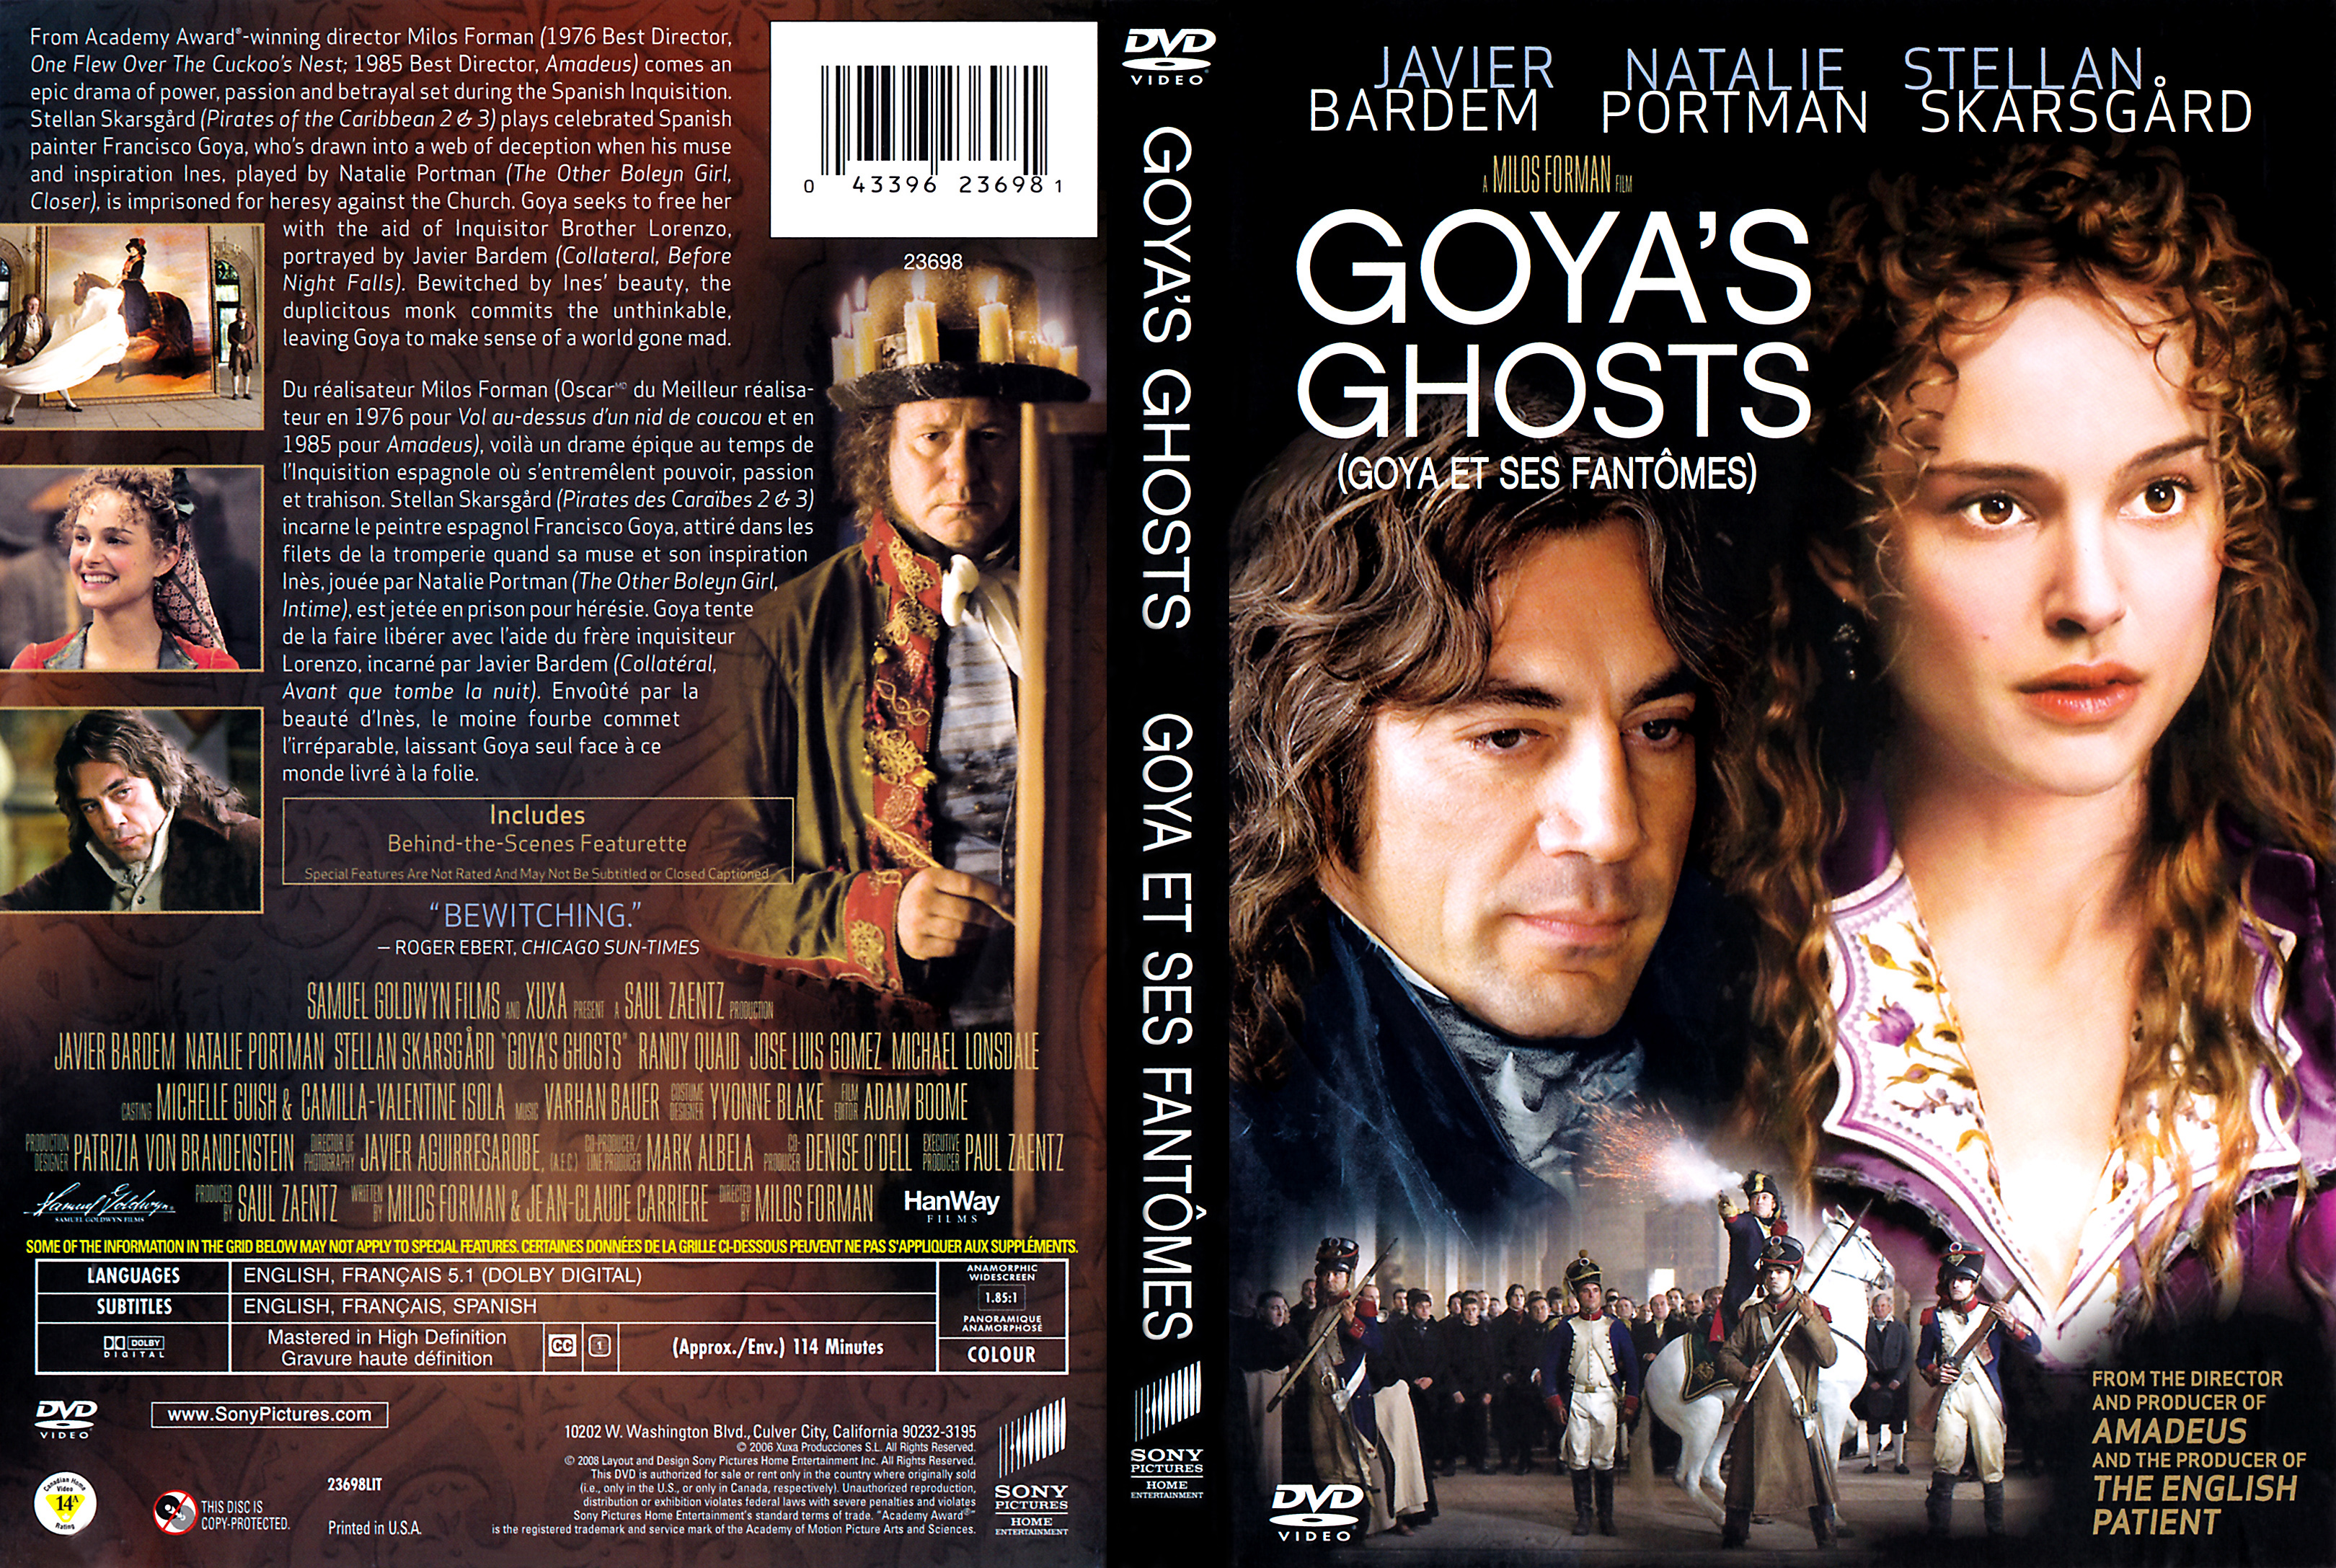 Free Preview Of Natalie Portman Naked In Goya's Ghosts